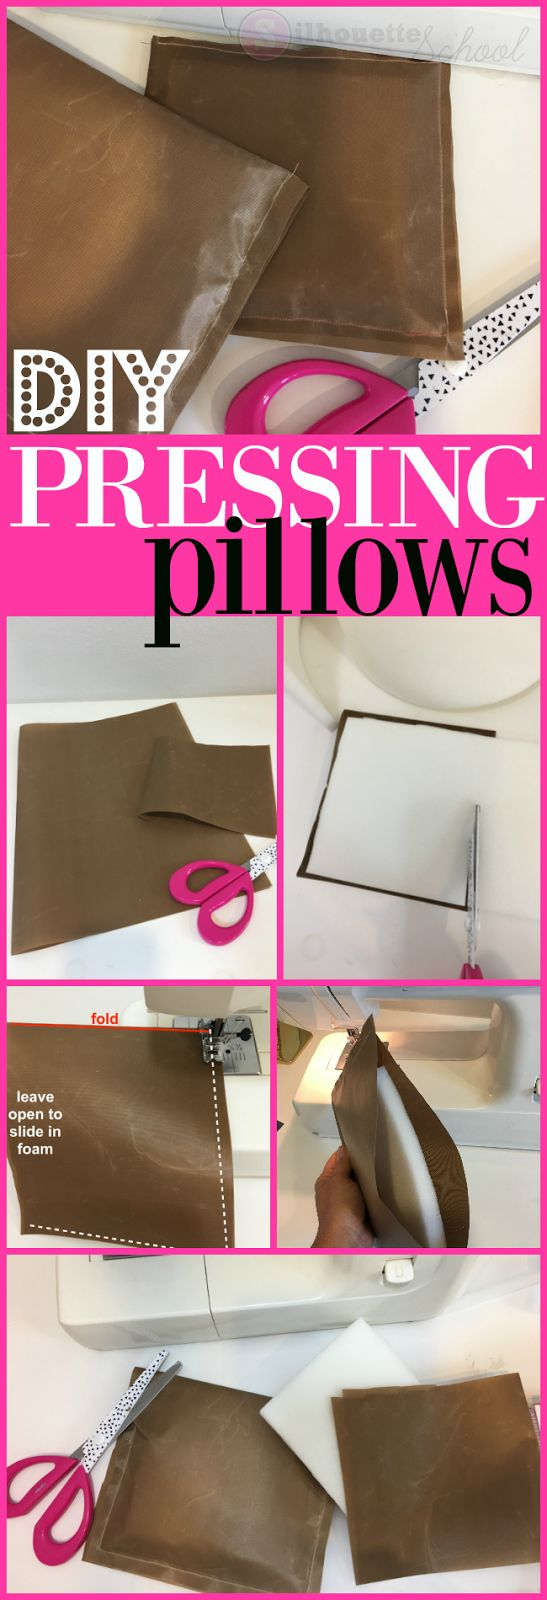 Heat Press Pillows: How to Make Your Own (and Save a Bunch of Money!)